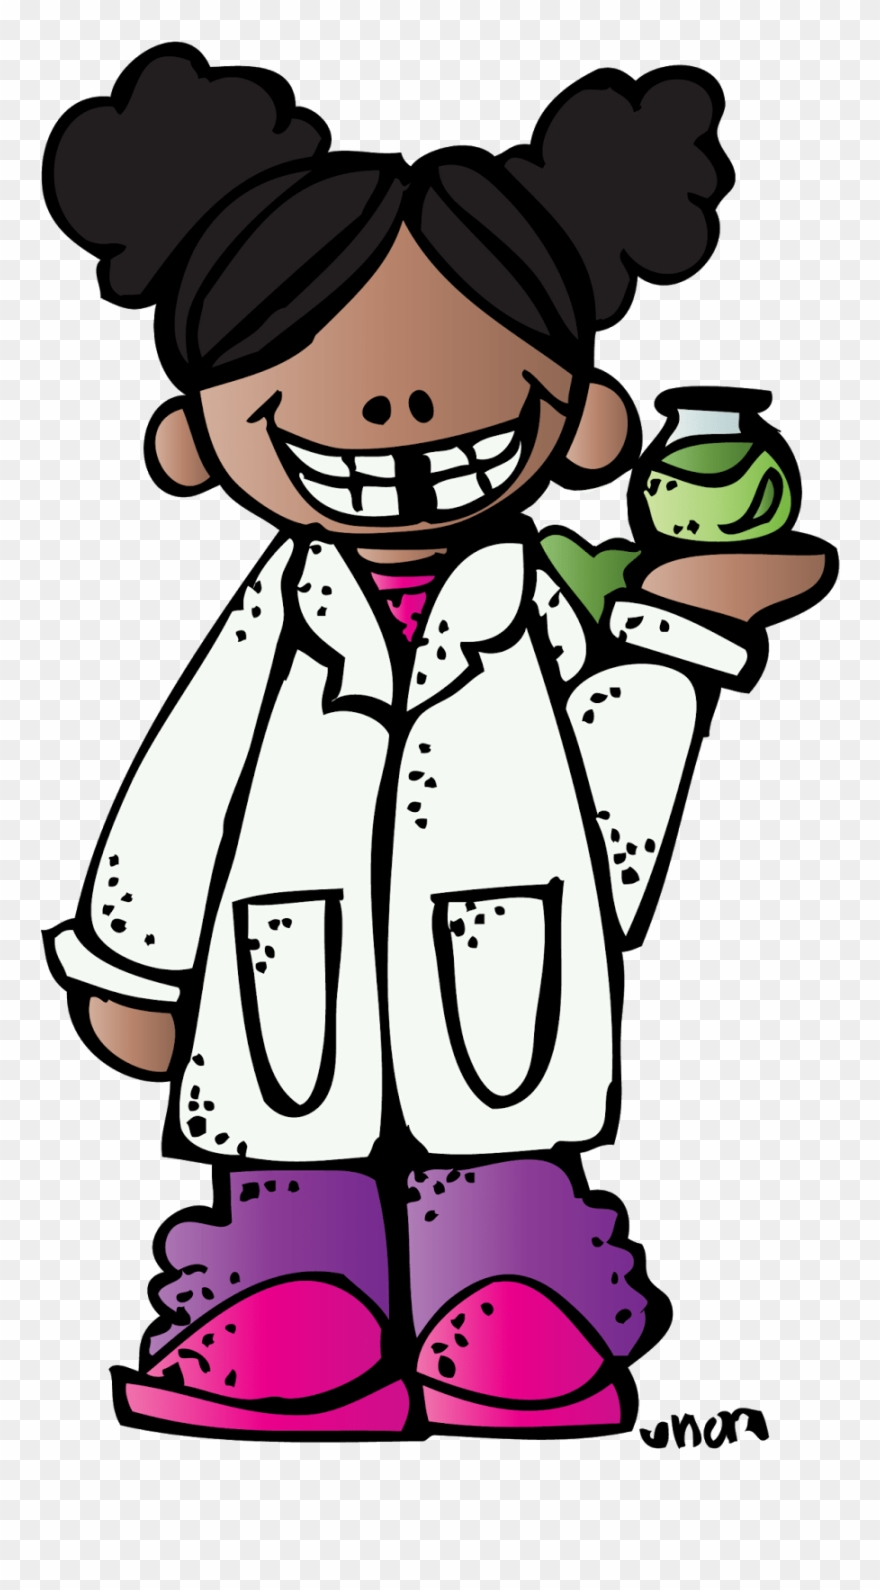 Melonheadz clipart science. Snow png